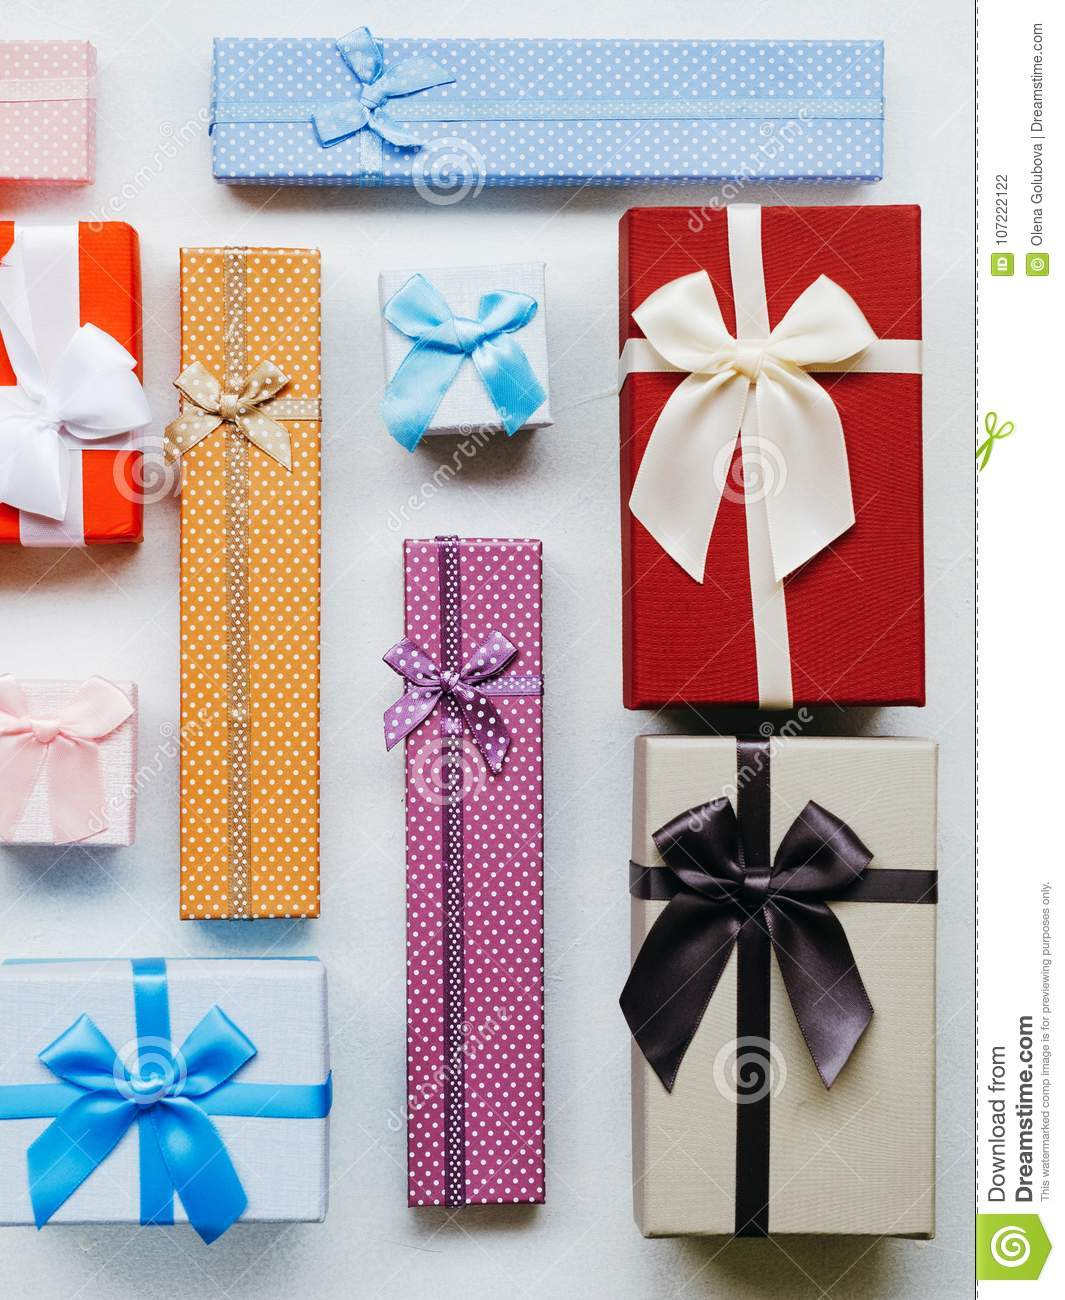 Present Wrapping Craft Creative Idea Boxes Design Stock